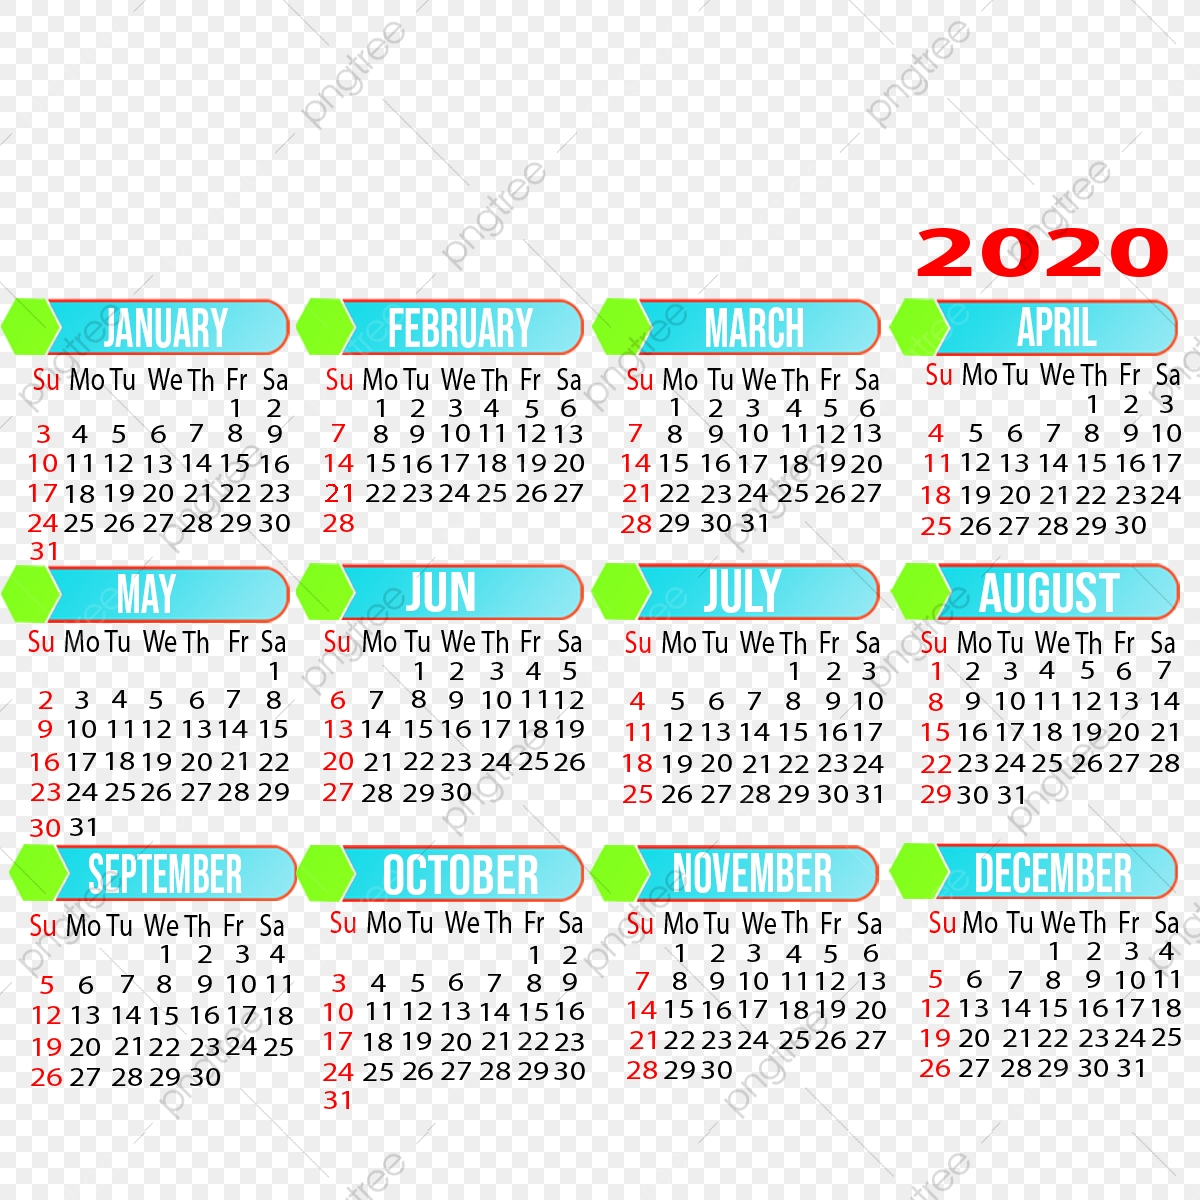 pngtree 2021 yearly calendar design png image